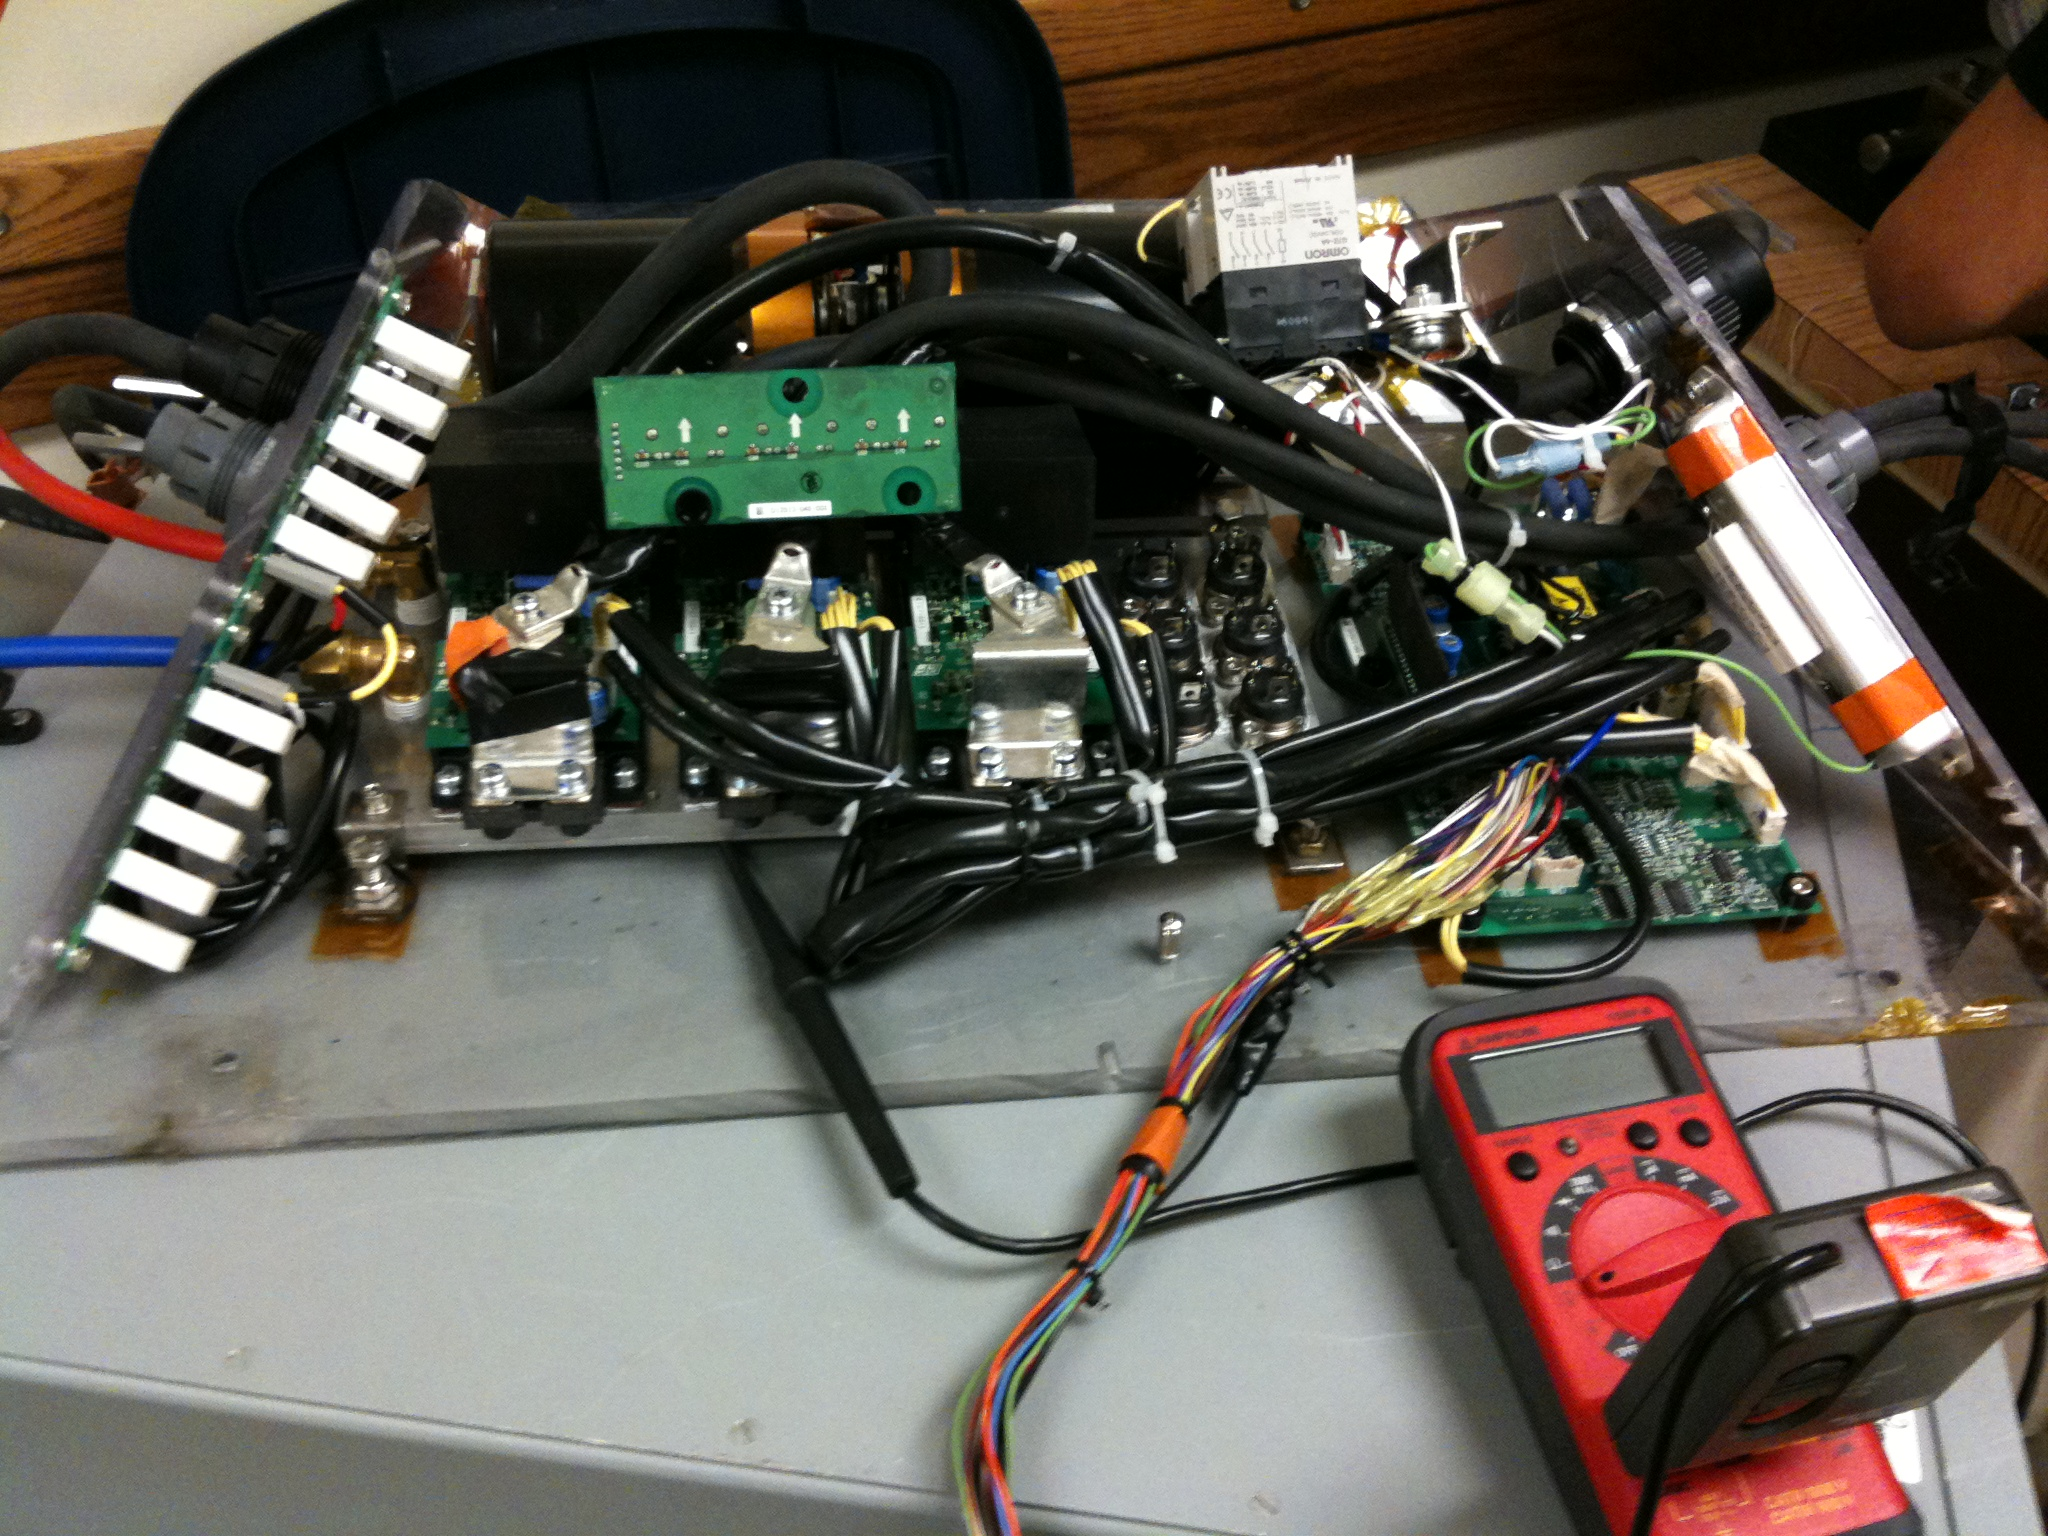 Repackaged A1000 motor drive